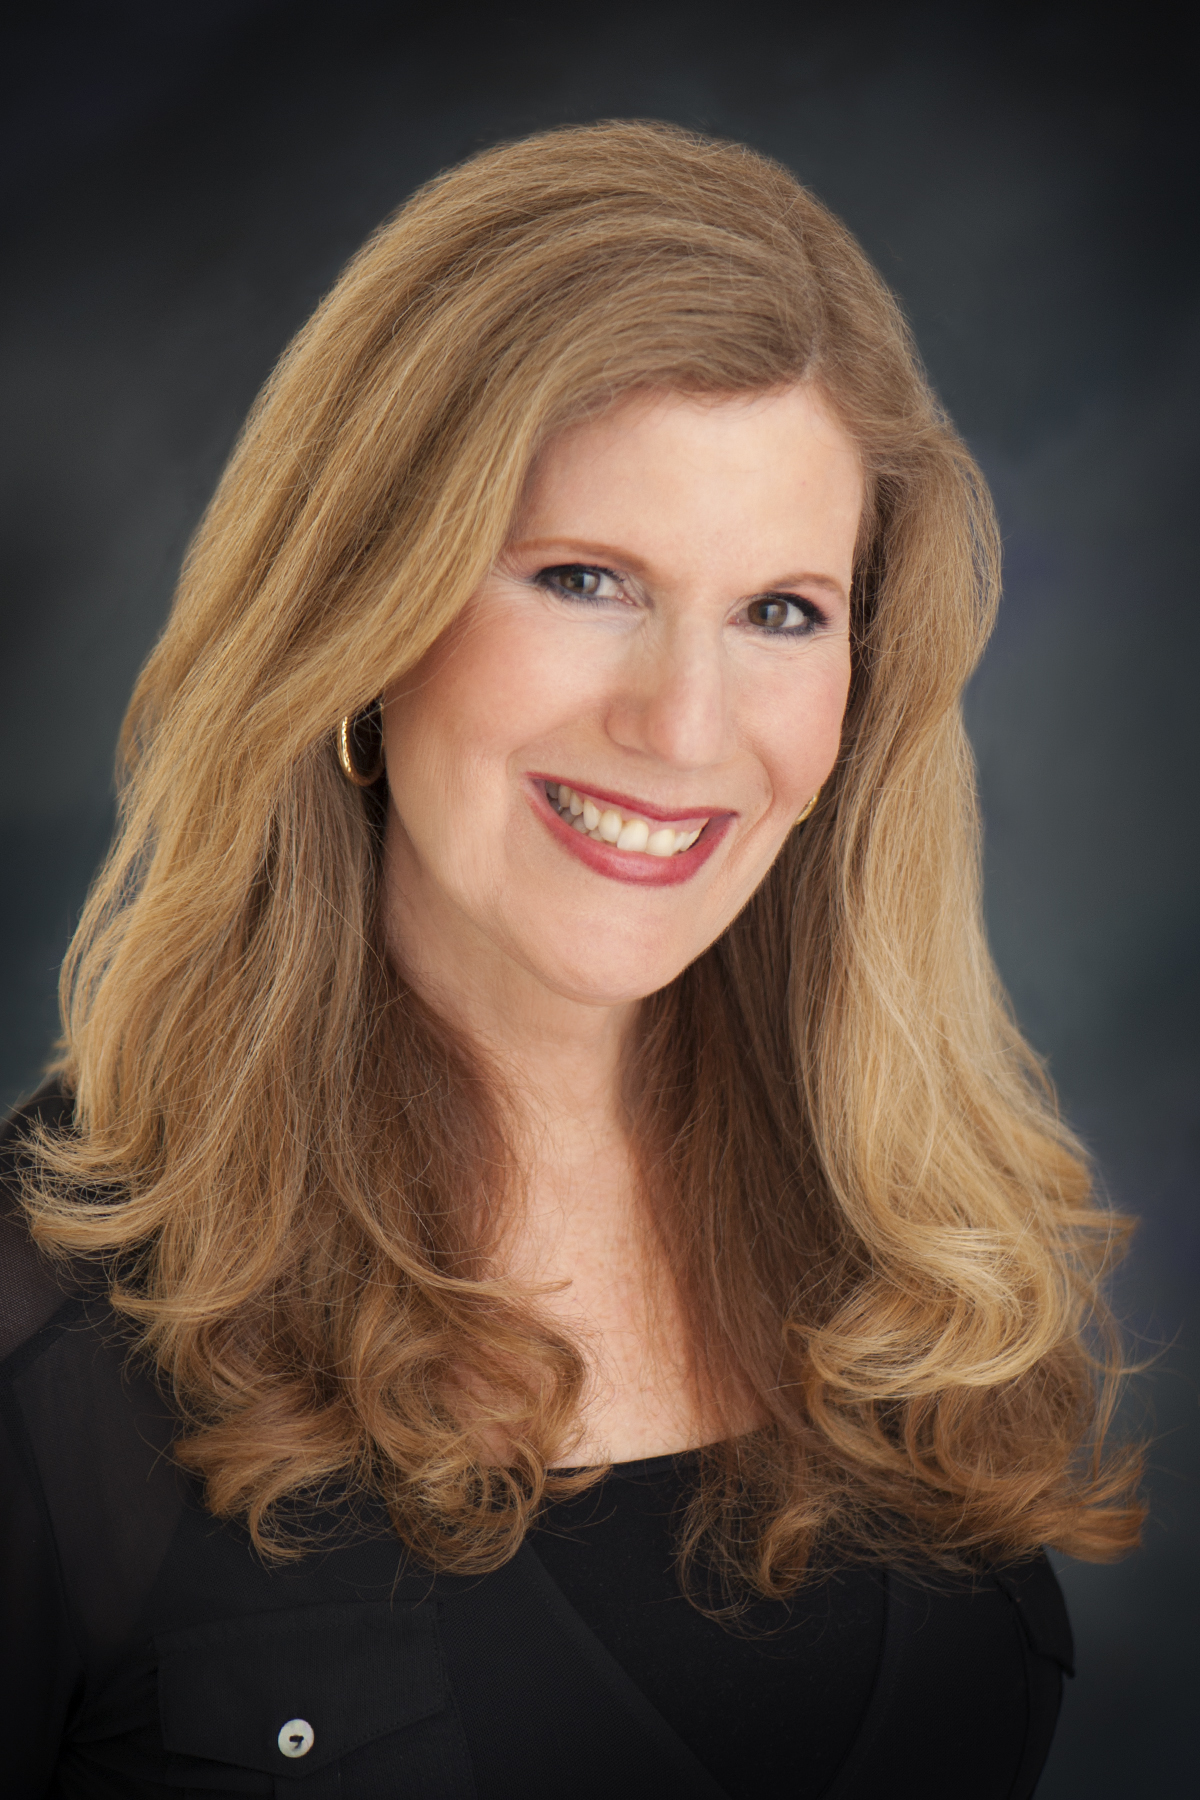 Debra Holtzman, J.D., M.A. Child Safety Expert